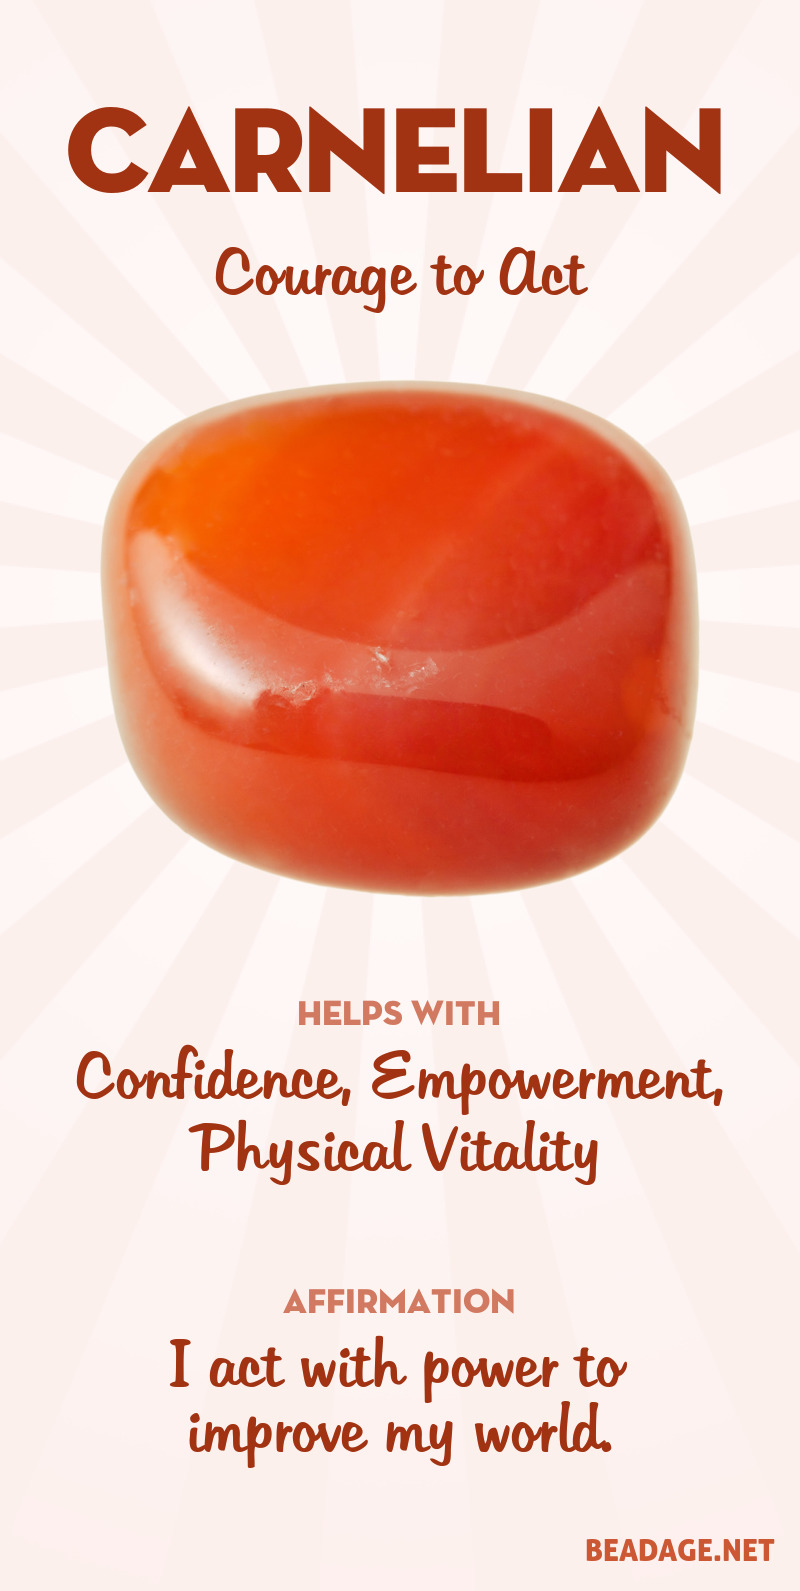 Carnelian is about action. By activating the first three chakras, Carnelian provides a powerful boost to your willpower, with the physical energy and drive to back it up. If your heart wants something, carnelian can give you the confidence and power to go for it. Learn more about Carnelian meaning + healing properties, benefits & more. Visit to find gemstone meanings & info about crystal healing. #gemstones #crystals #crystalhealing #beadage